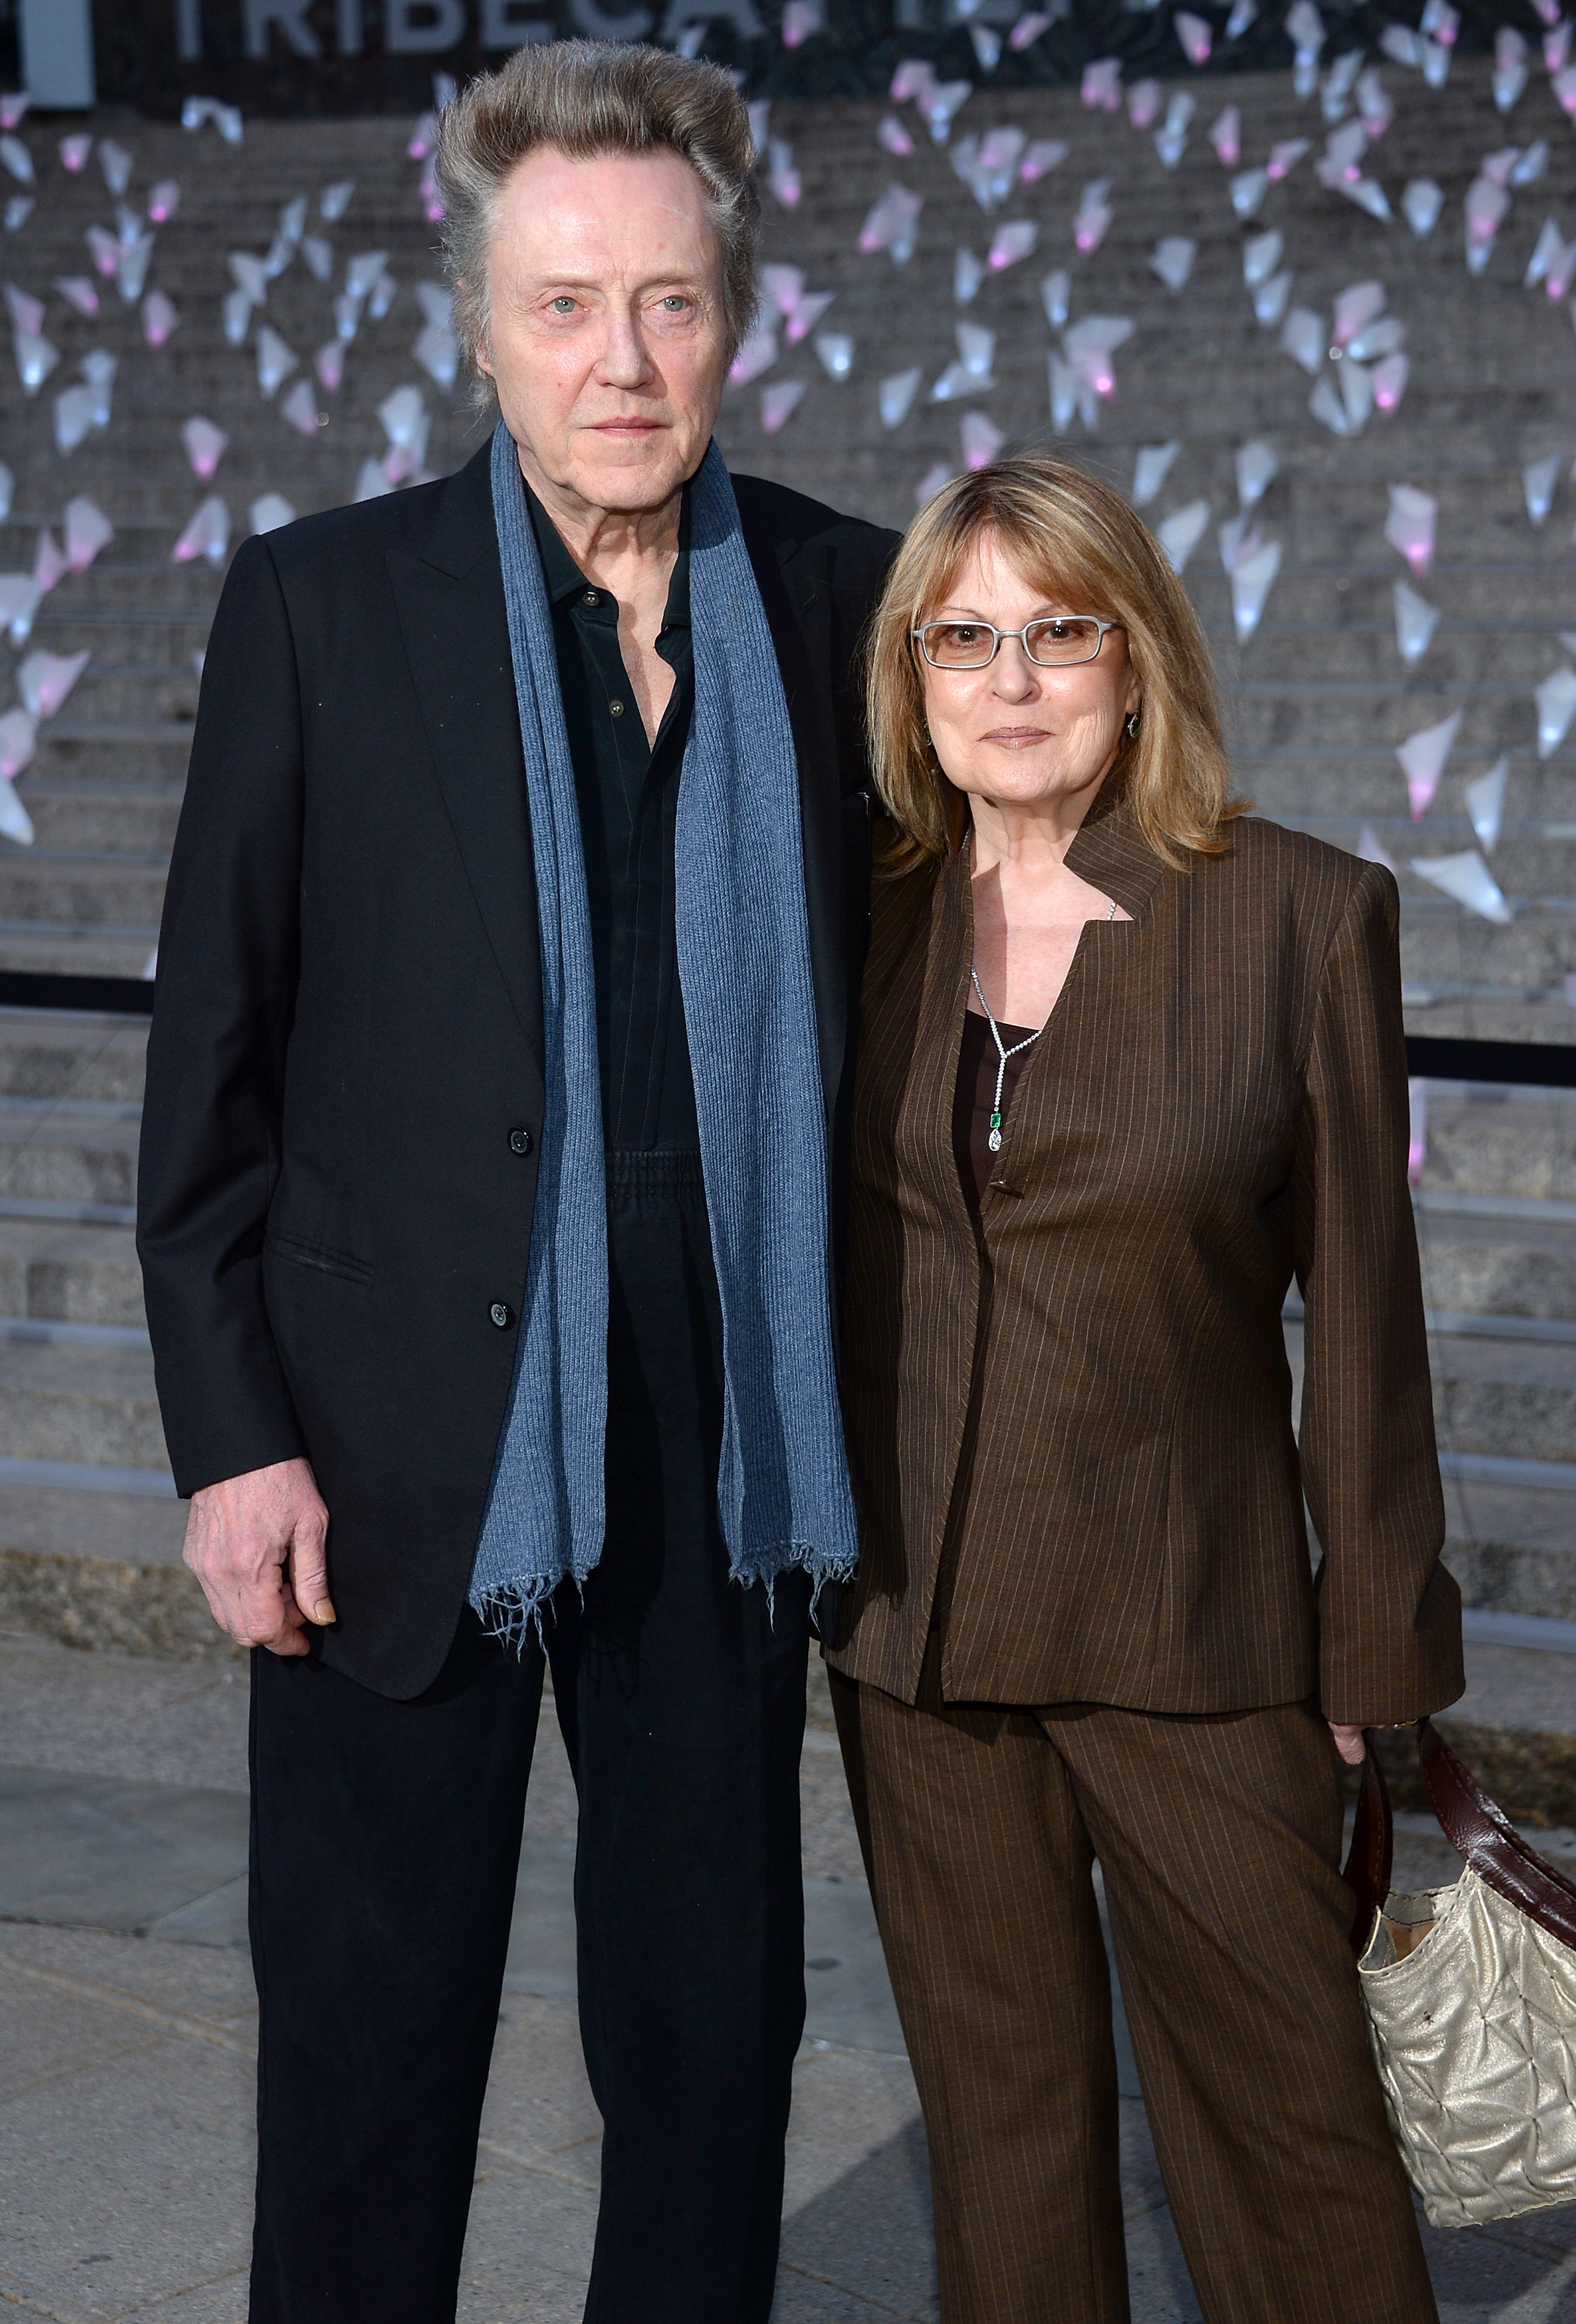 Christopher Walken attended the Vanity Fair party with his wife, Georgianne Walken.